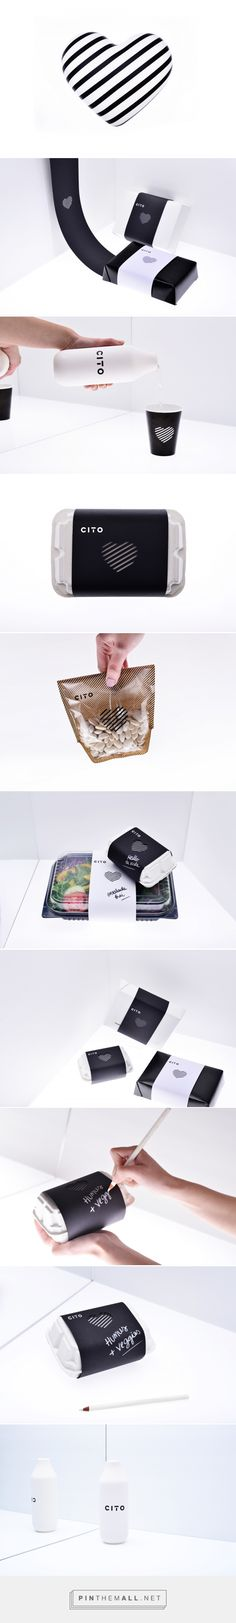 Branding, packaging and empaque for Cito by Estudio Yeyé ® Smart & Beauty curated by Packaging Diva PD. Cito provides a controlled menu that cares about your little heart : )